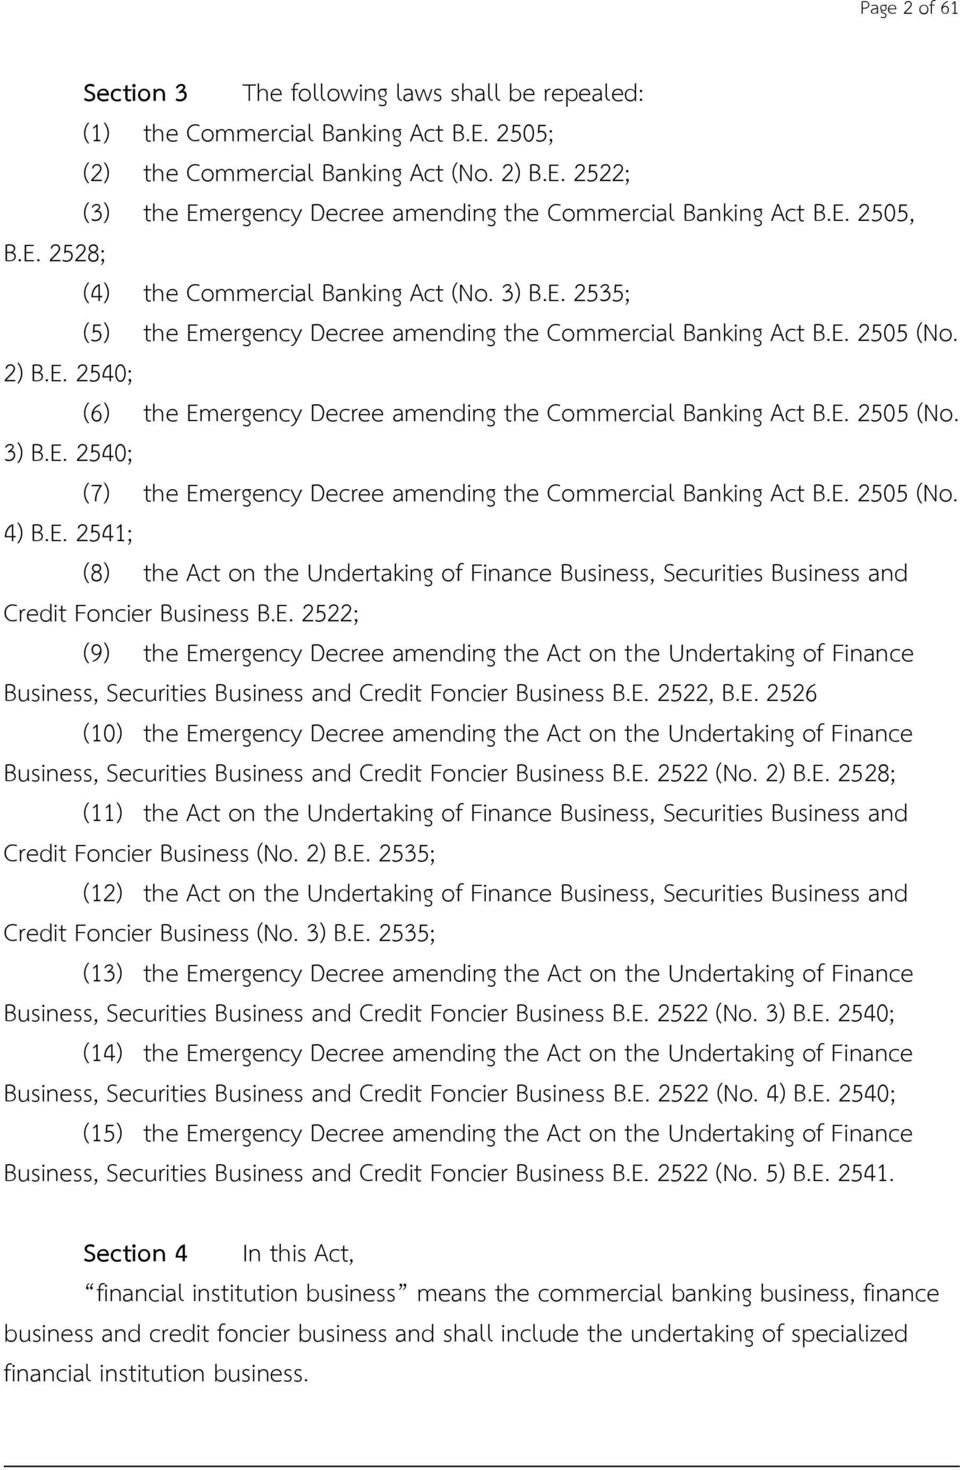 E. 2505 (No. 3) B.E. 2540; (7) the Emergency Decree amending the Commercial Banking Act B.E. 2505 (No. 4) B.E. 2541; (8) the Act on the Undertaking of Finance Business, Securities Business and Credit Foncier Business B.